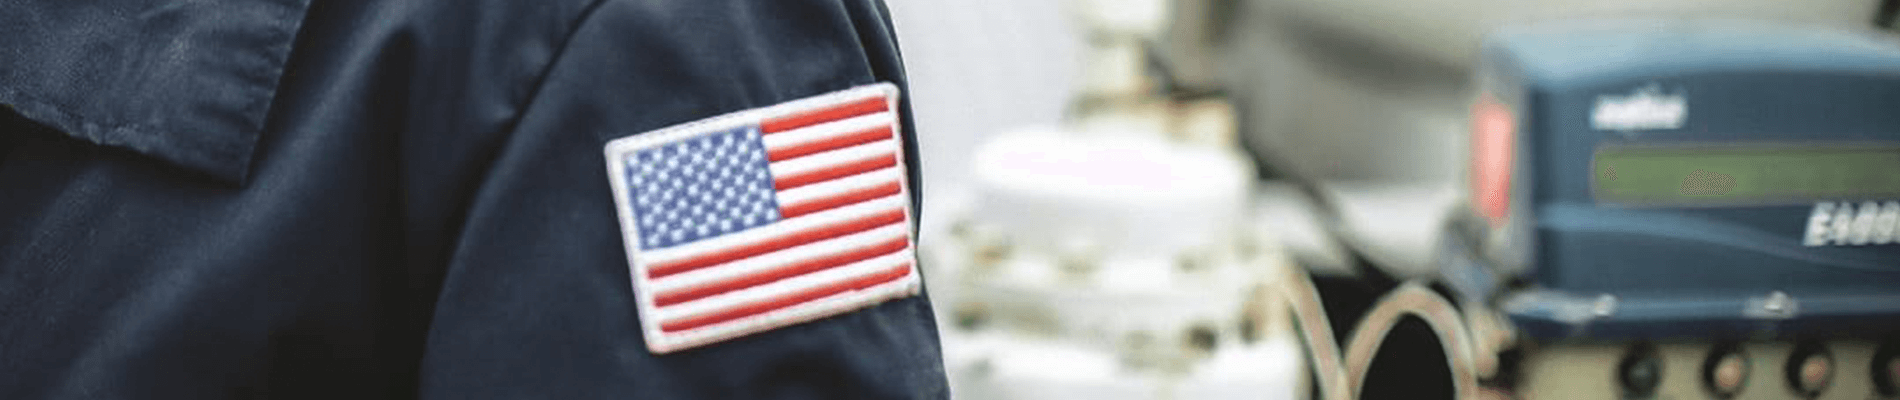 Worker with American Flag on Sleeve